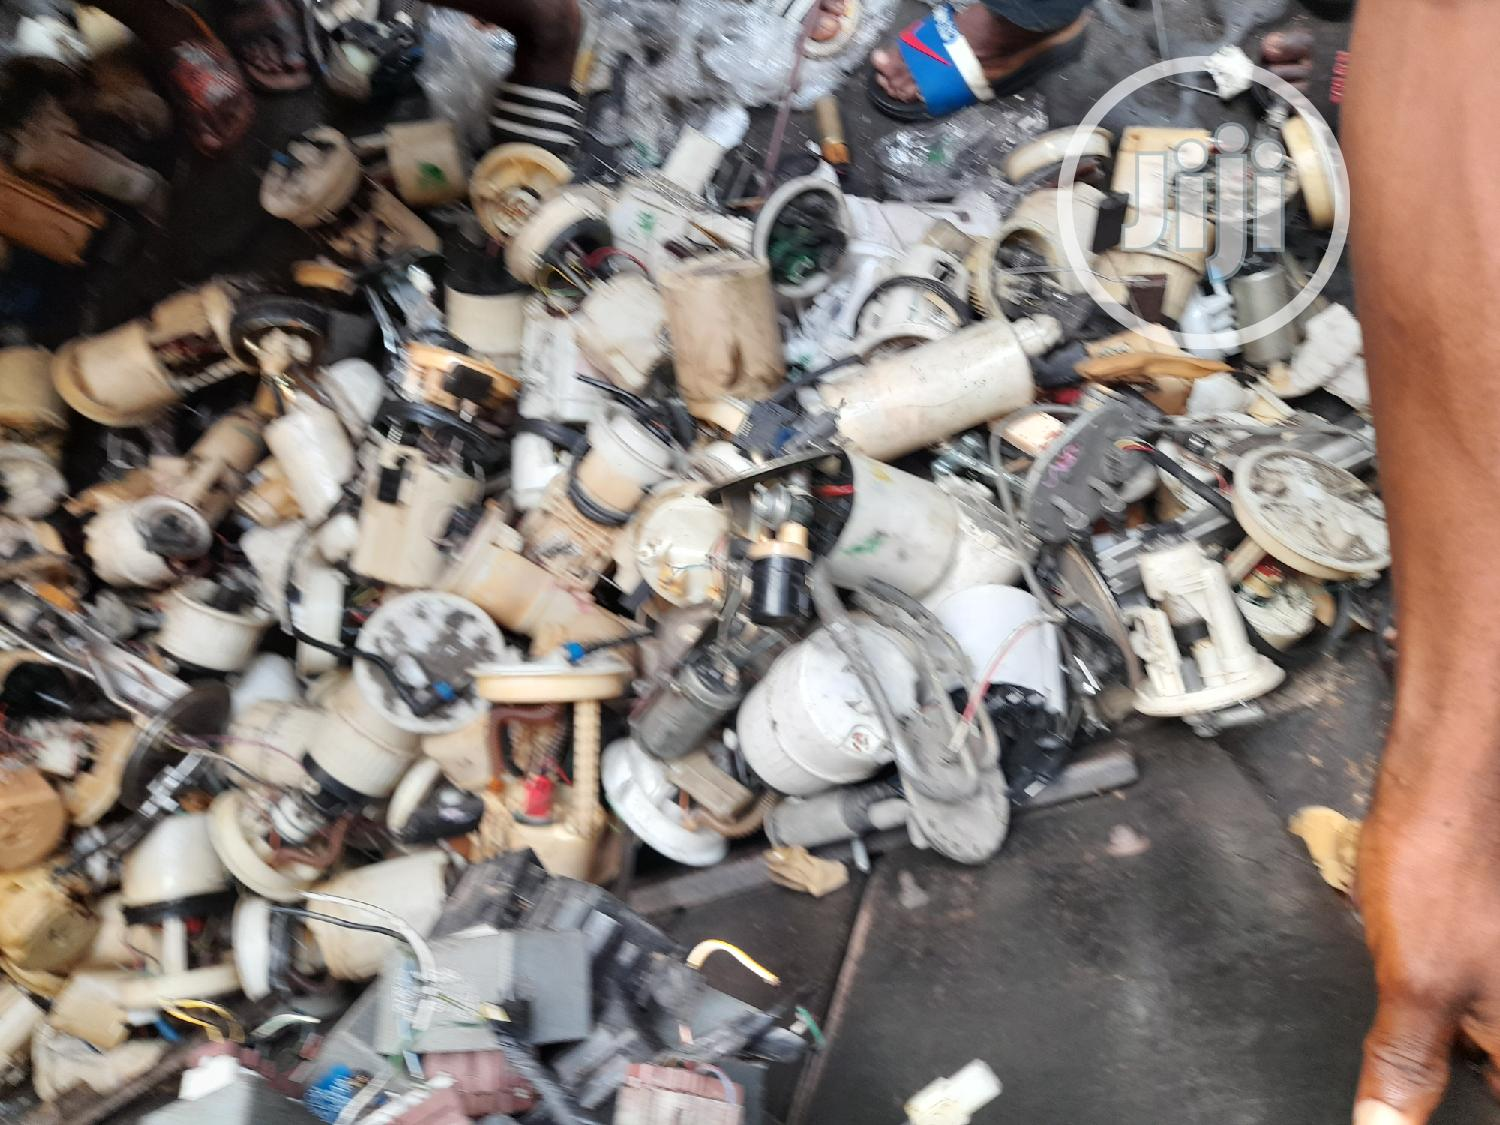 General Parts And Complete Fuel Pump Used Japanese, Etc   Vehicle Parts & Accessories for sale in Onitsha, Anambra State, Nigeria